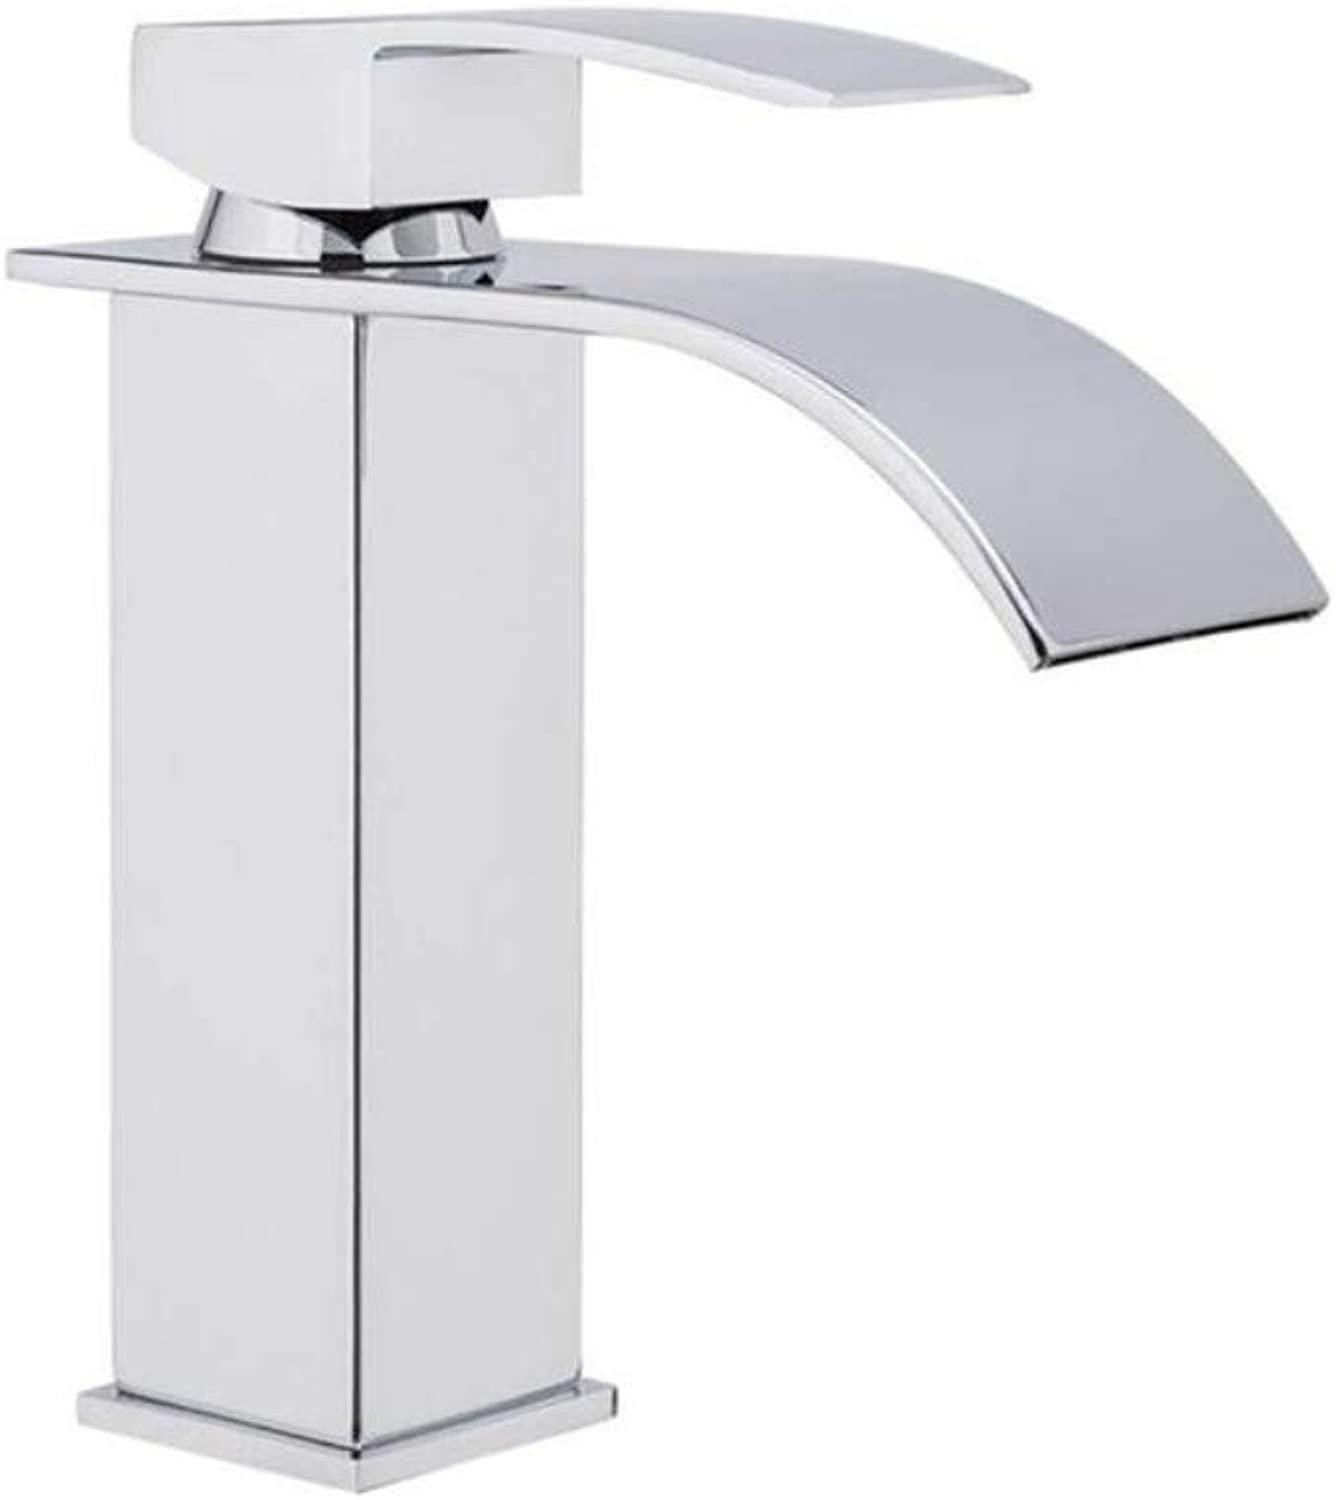 Brass Hot and Cold Chrome Plating Sink Faucet Basin Faucet Brass Faucet Water Single Handle Mixer Tap Deck Mount Torneira